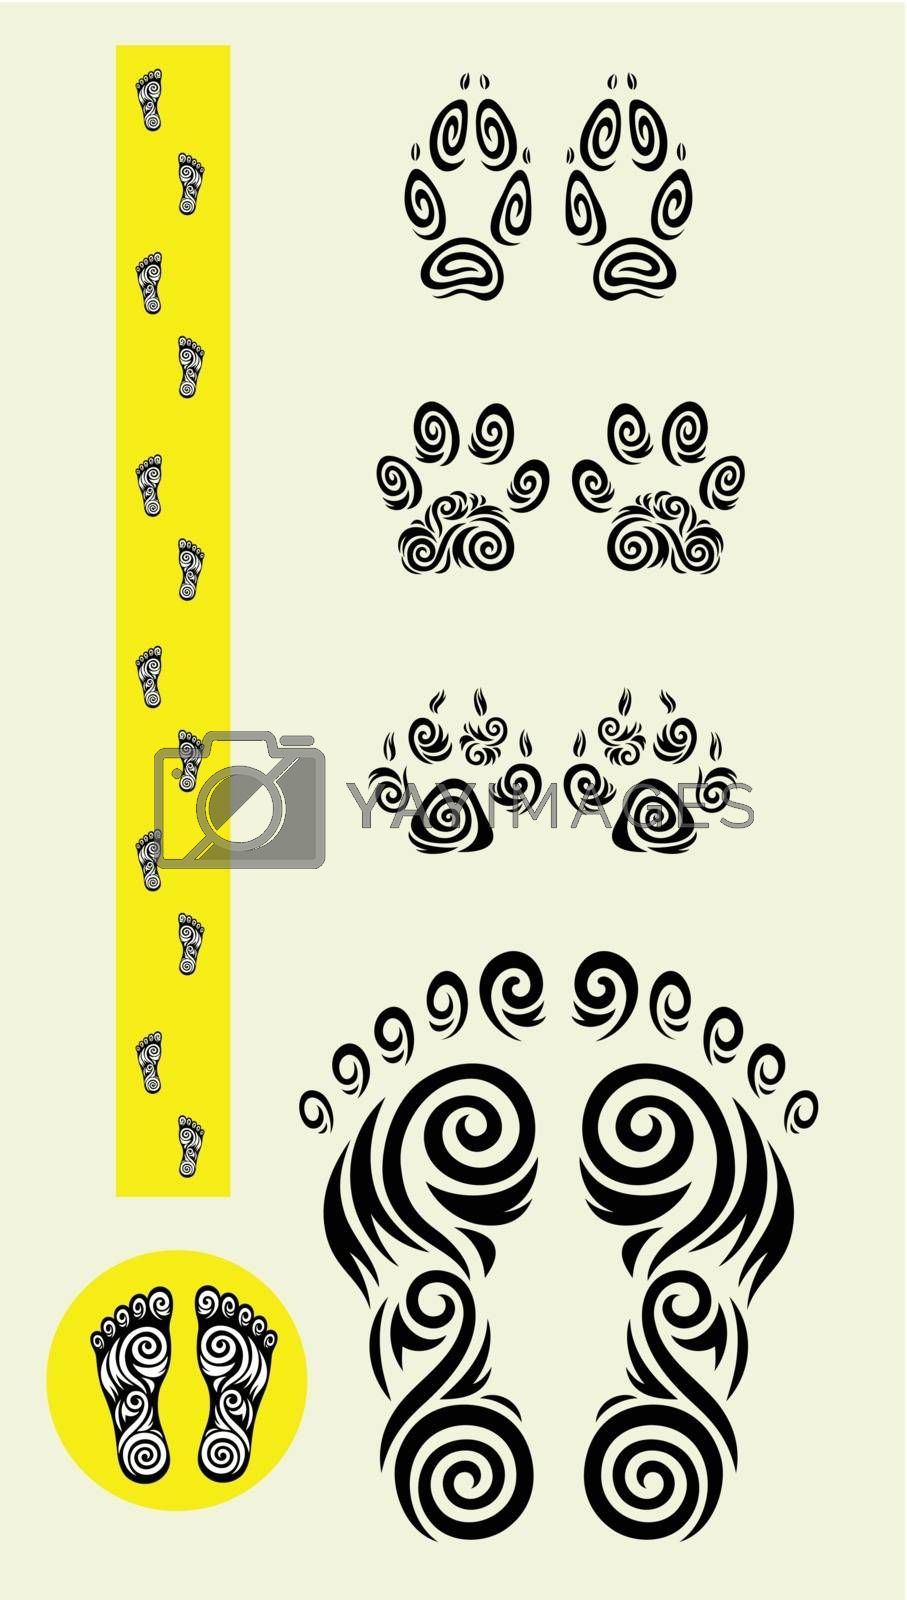 Track kick ornament set, animal and people track kick, art vector design